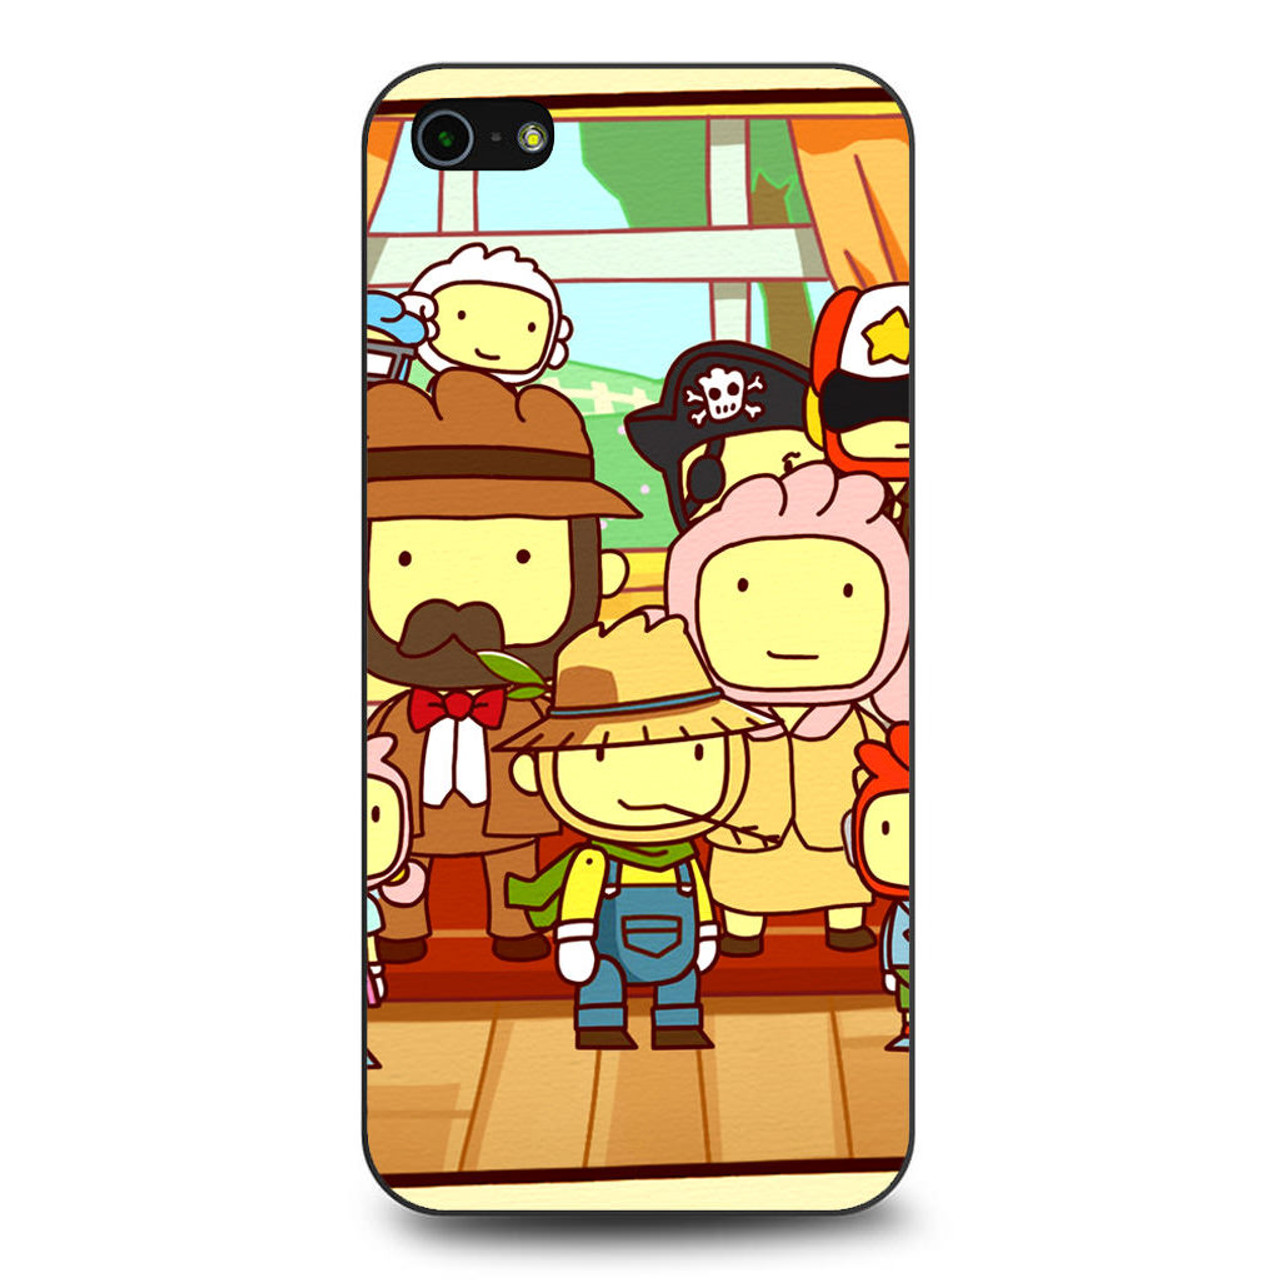 Video Game Scribblenauts Unlimited iPhone 5/5S/SE Case